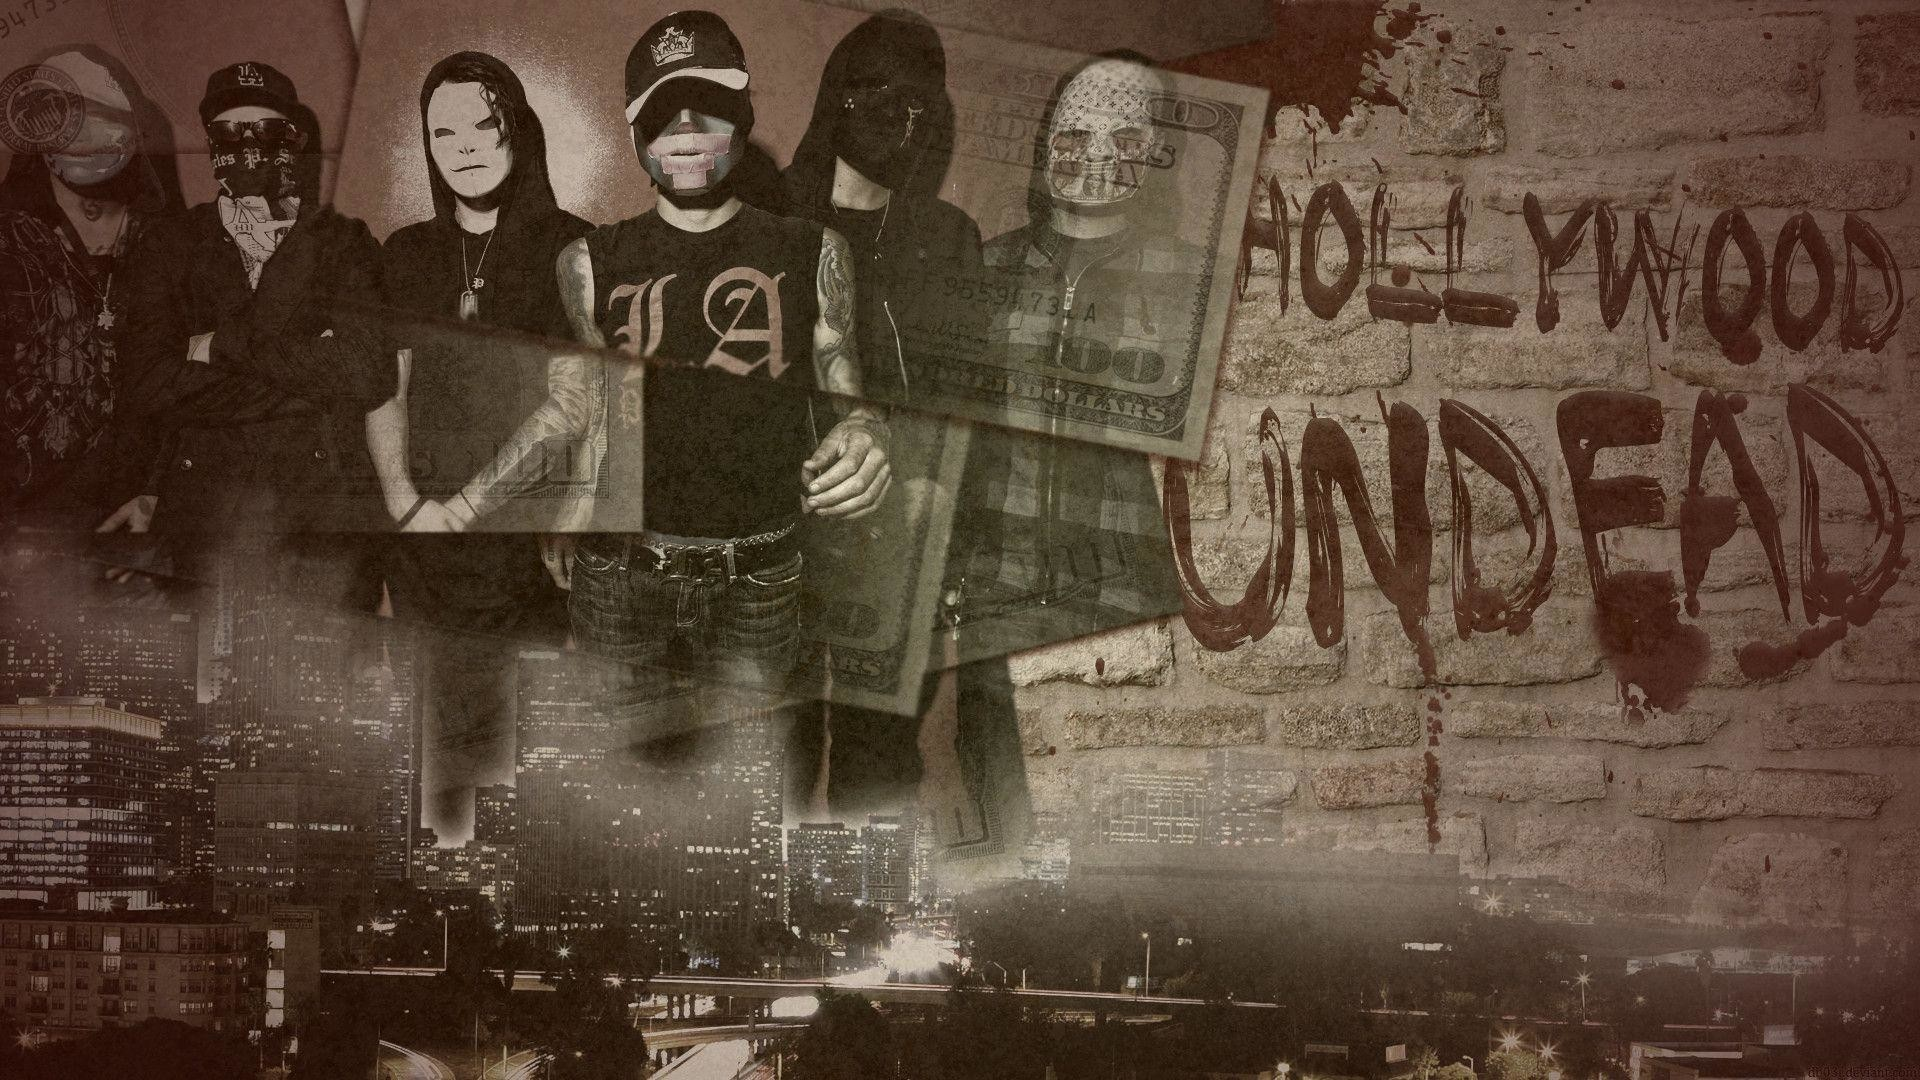 1920x1080 7. hollywood-undead-wallpaper8-600x338